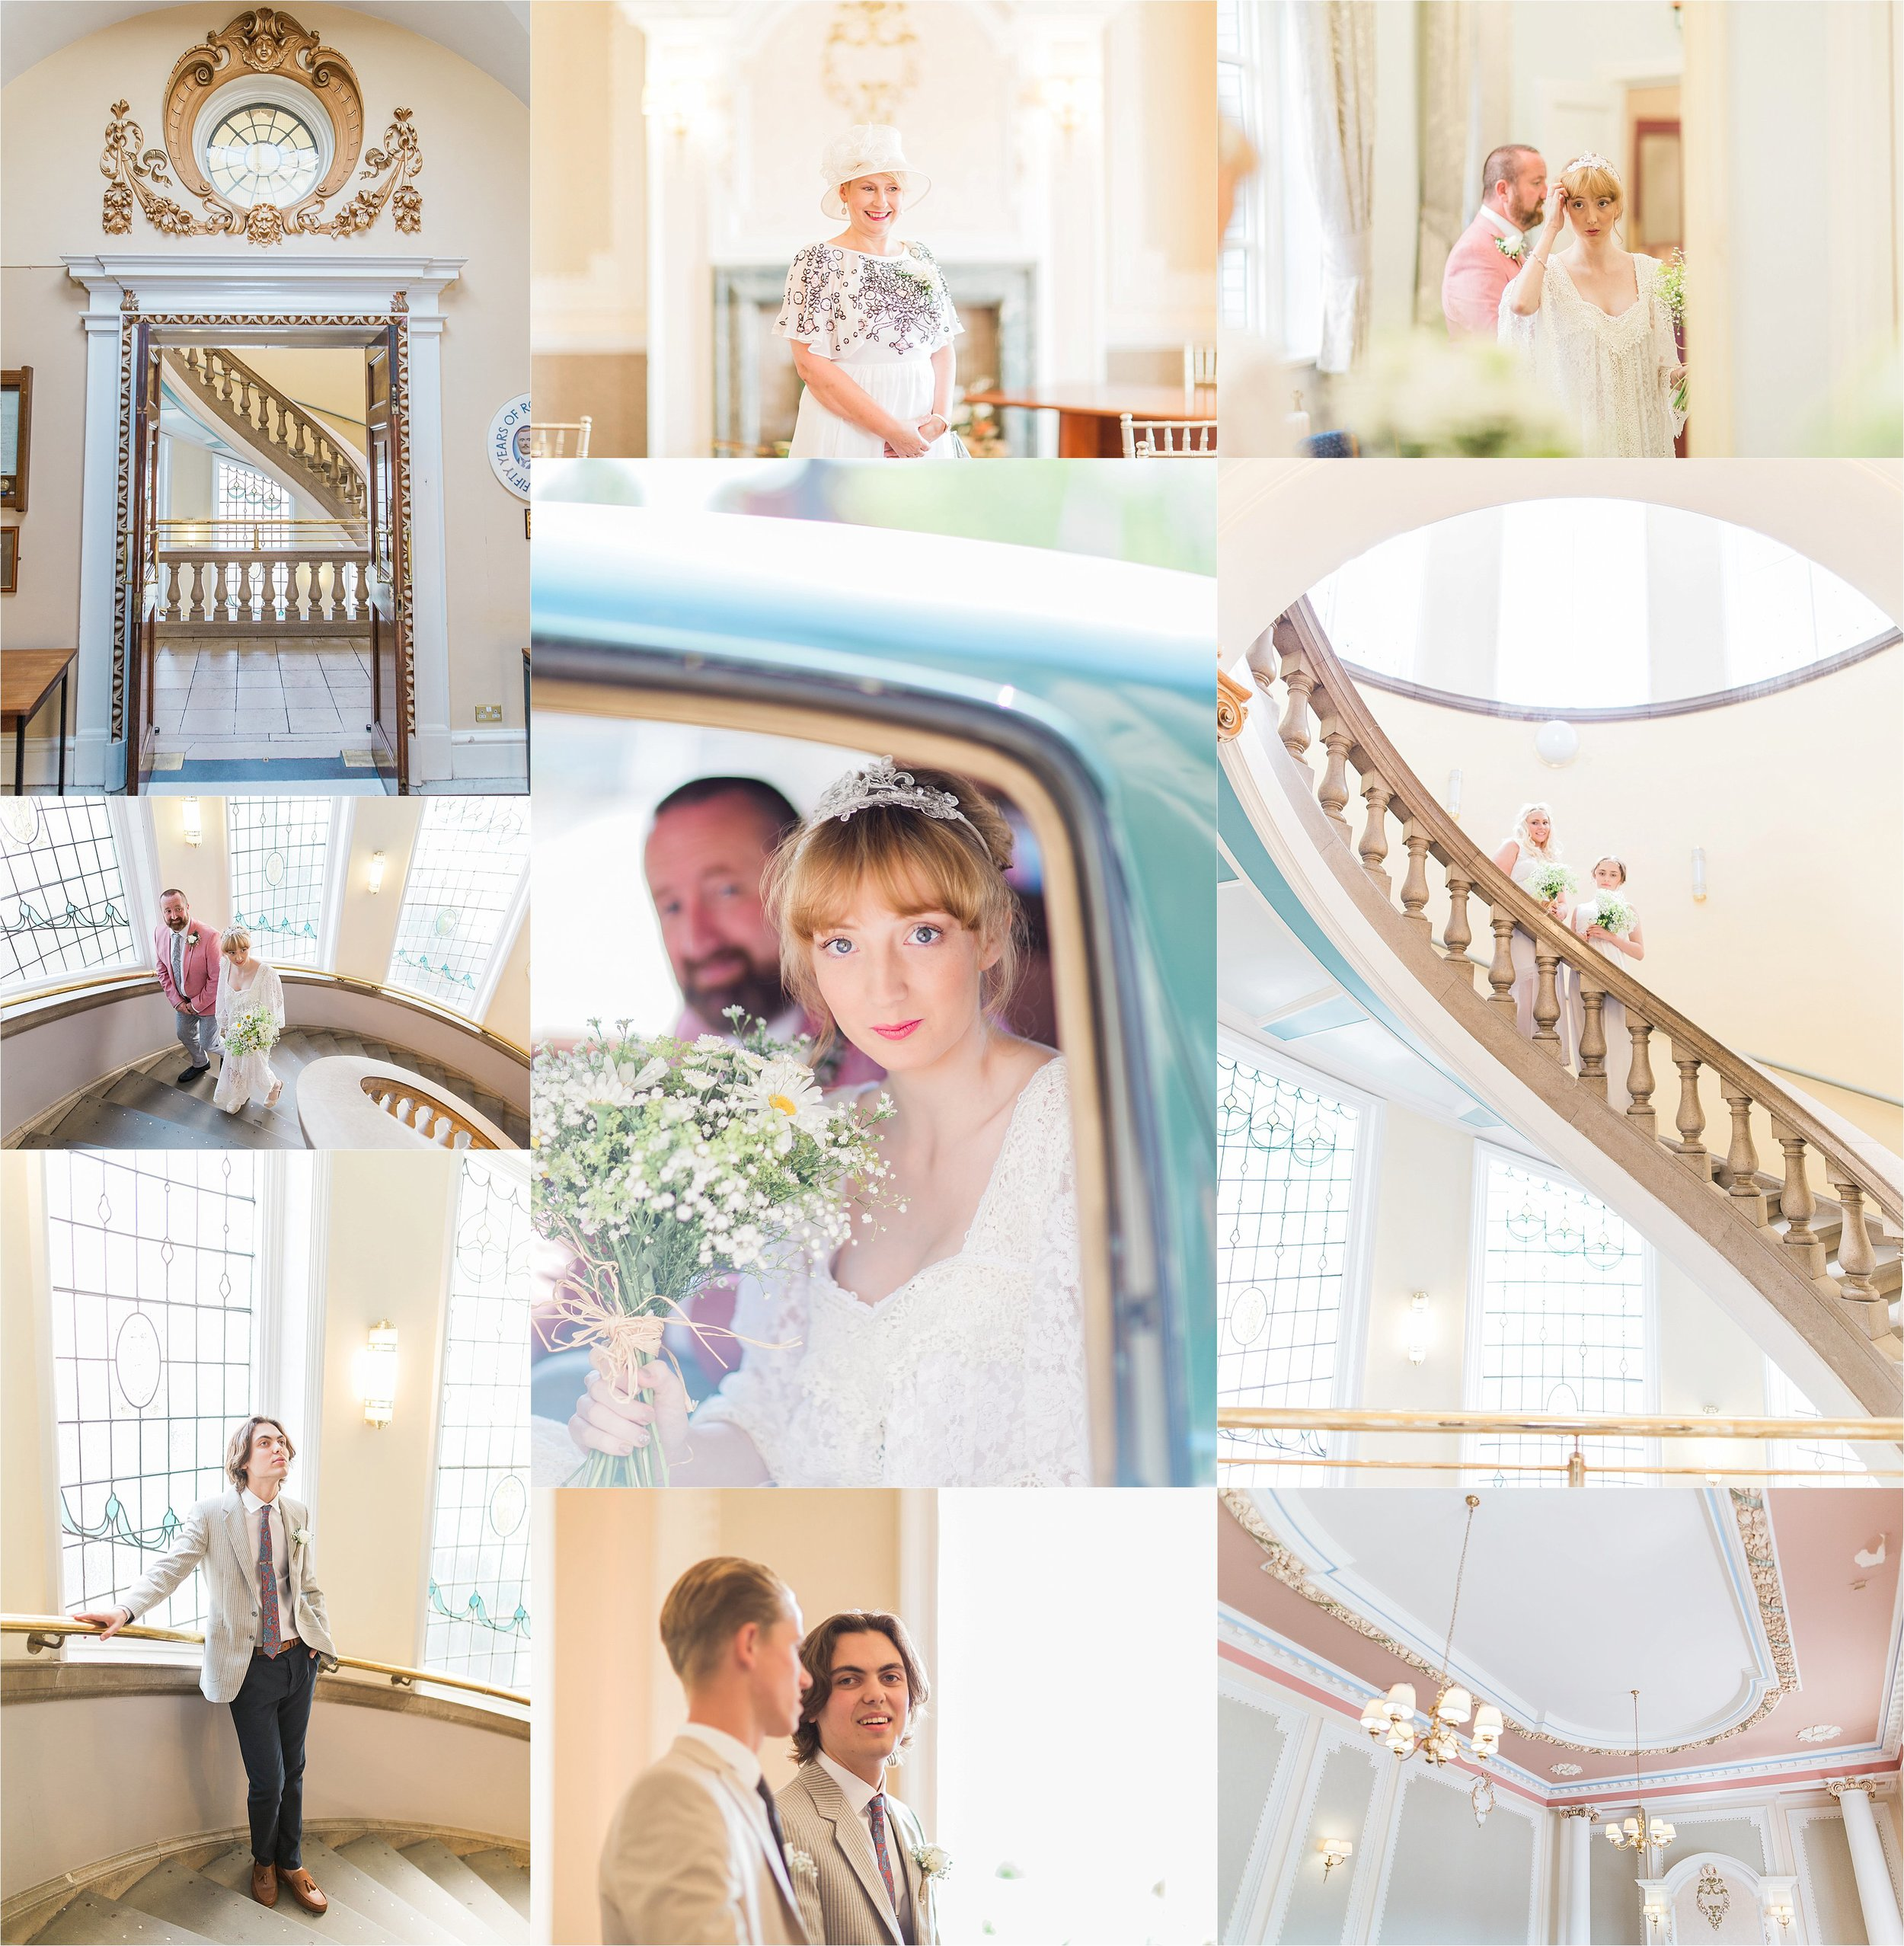 The wedding took place in the mayor's reception room at the  Municipal Buildings  in Crewe, with its stunning pastel palette and bright window light, this was the ceremony venue of dreams.